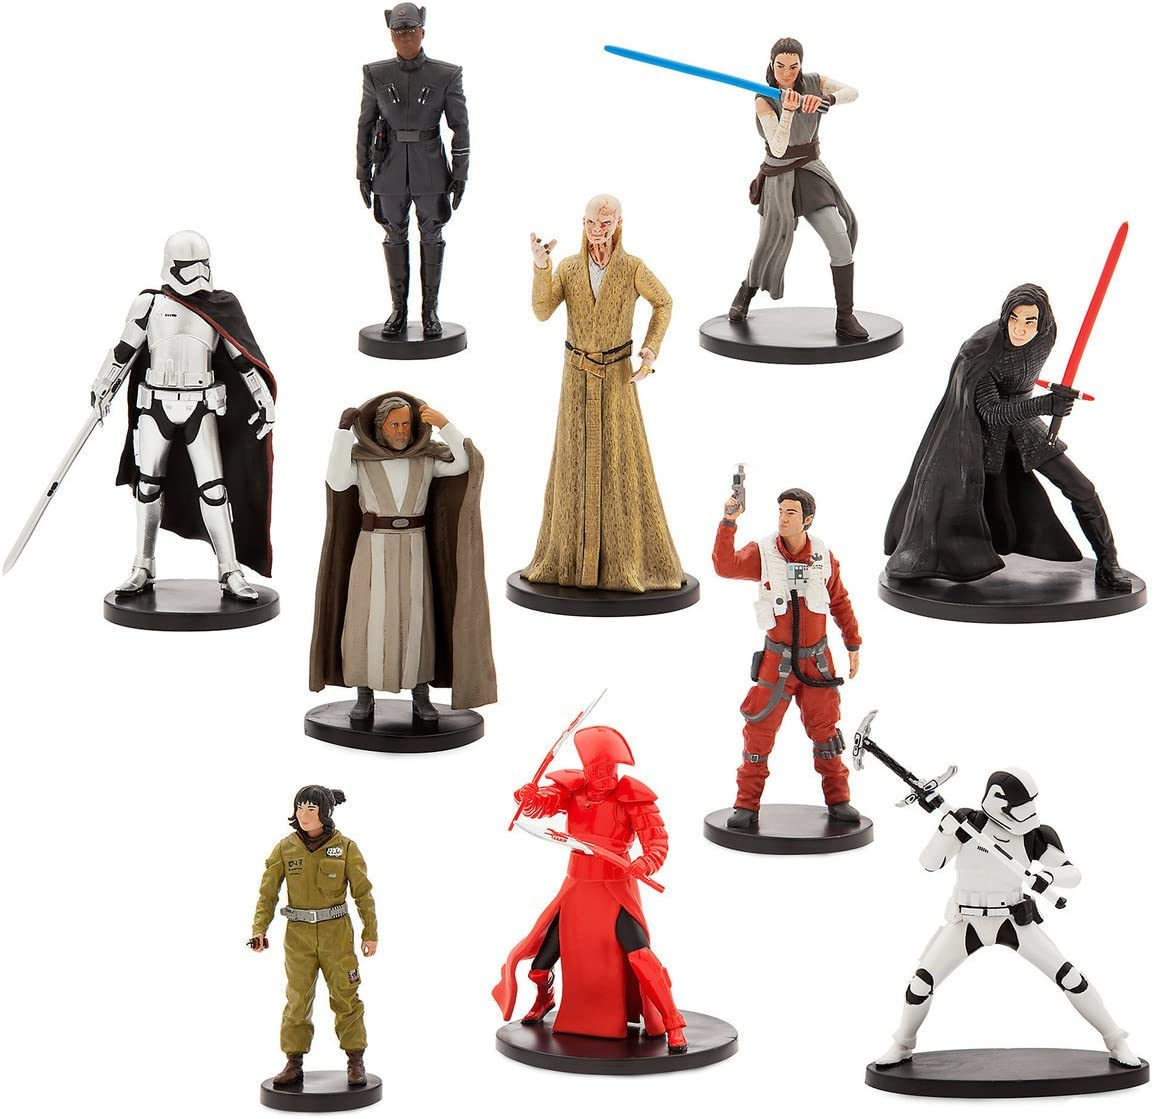 Star Wars Star Wars: The Last Jedi Deluxe Figure Play Set: Amazon.es: Juguetes y juegos